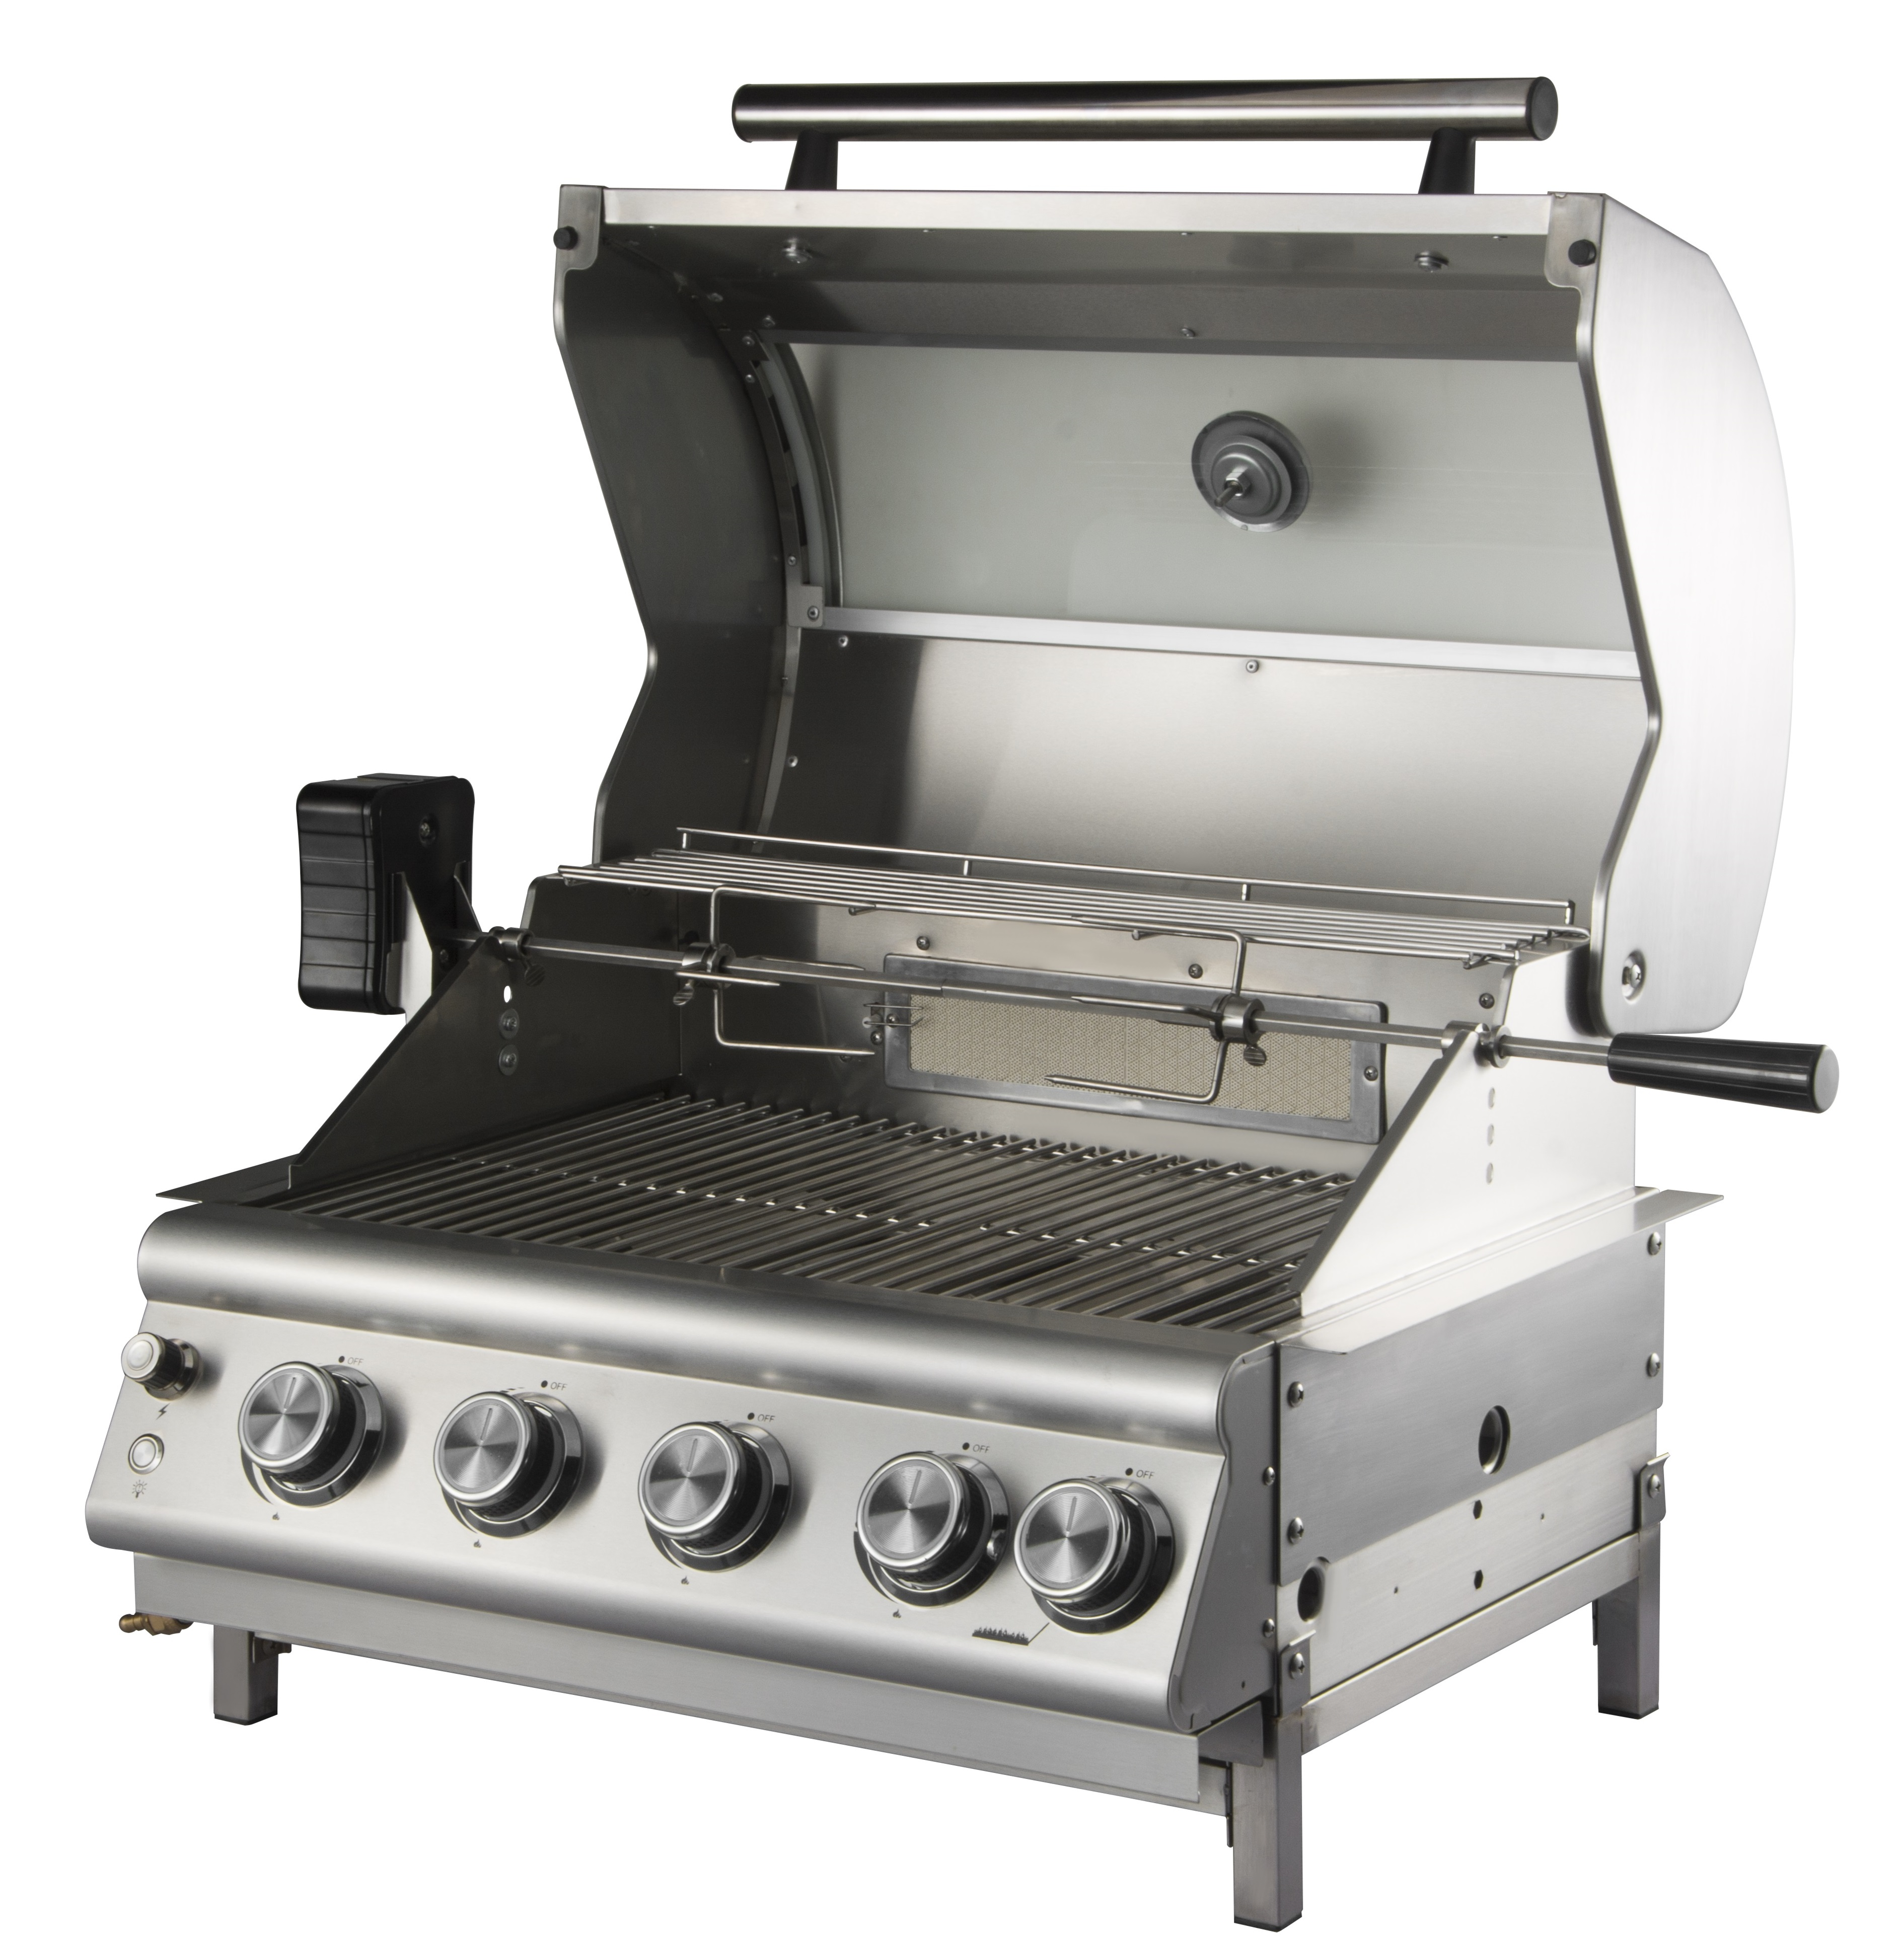 4 Burner Built-In Gas BBQ Grill